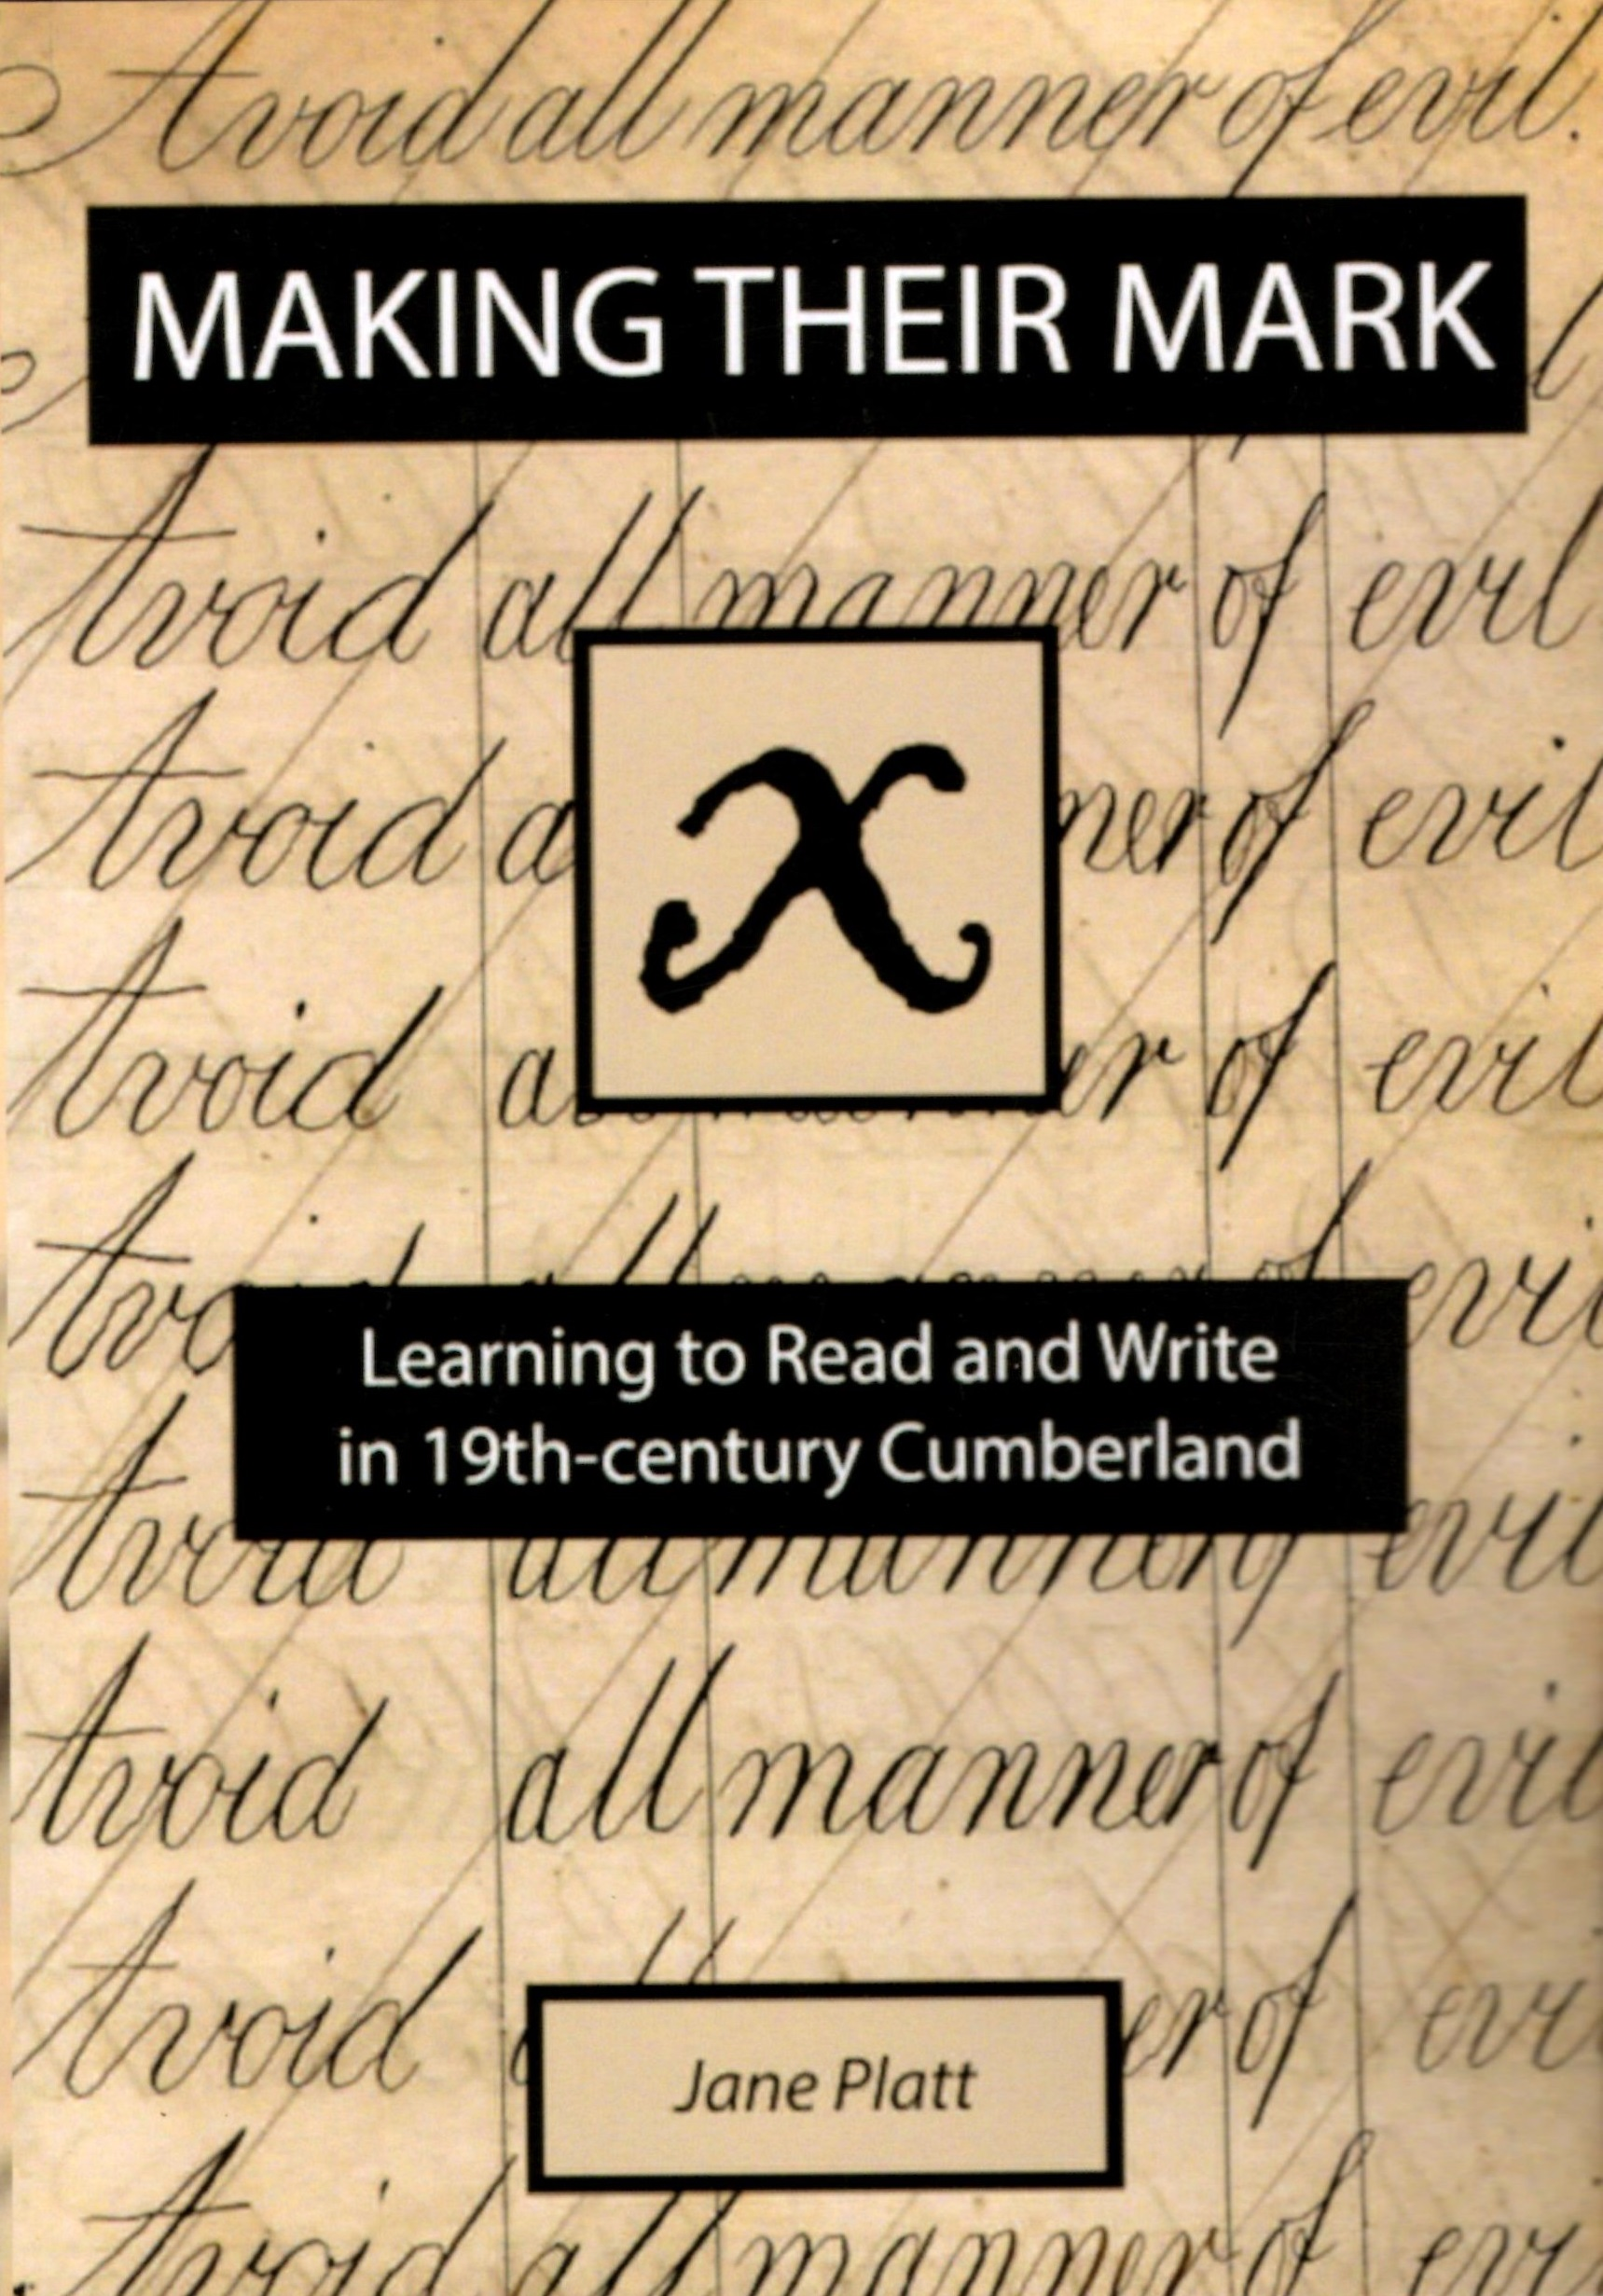 Making Their Mark: Learning to Read and Write in 19th-century Cumberland